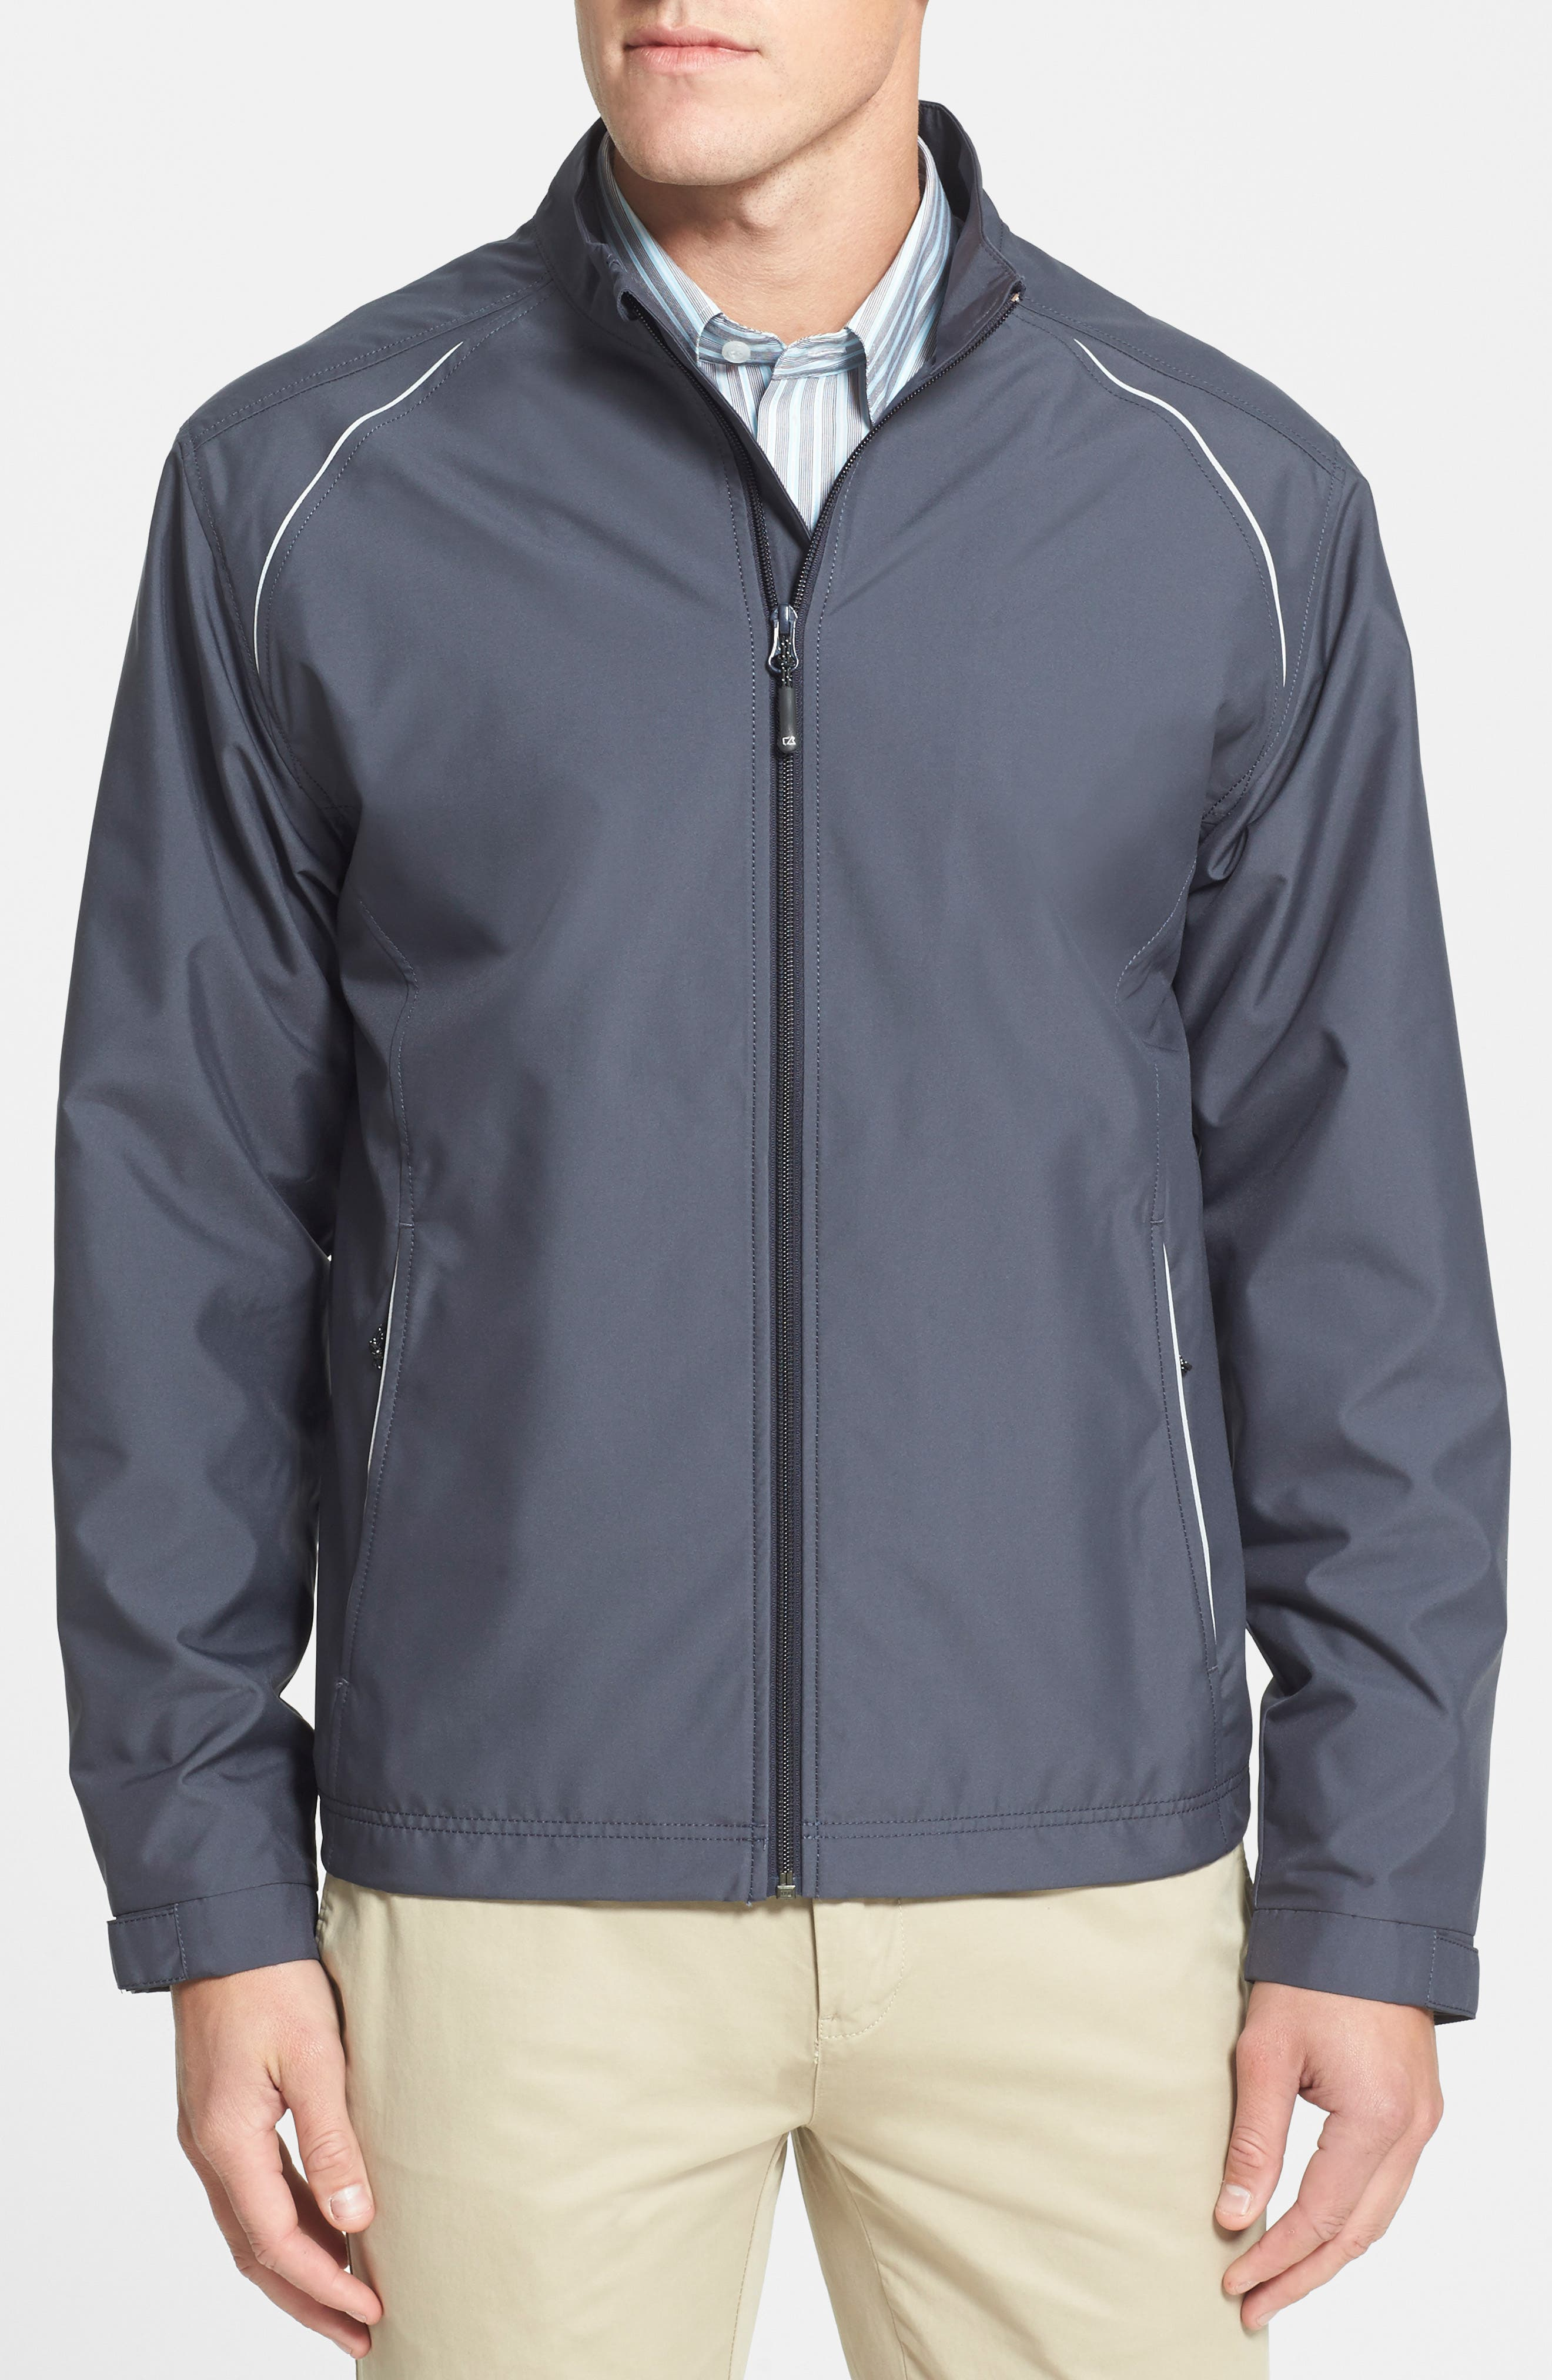 Beacon WeatherTec Wind & Water Resistant Jacket,                             Alternate thumbnail 3, color,                             ONYX GREY